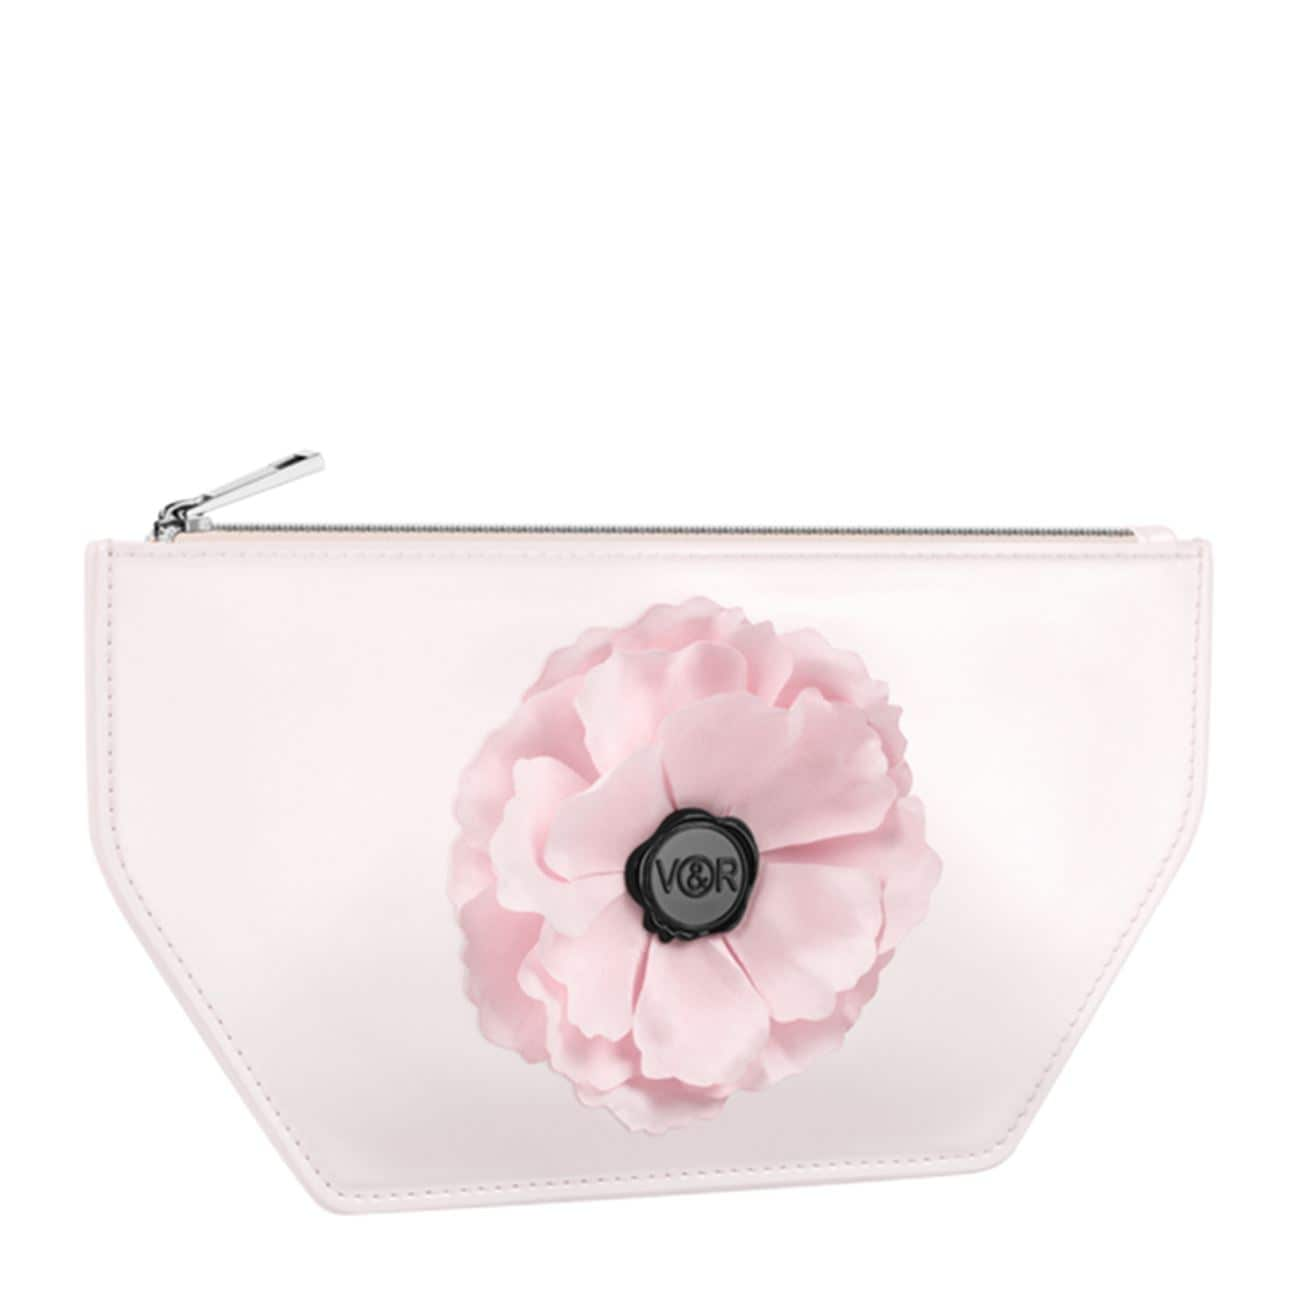 Flowerbomb Dew Make Up Pouch - Free Gift